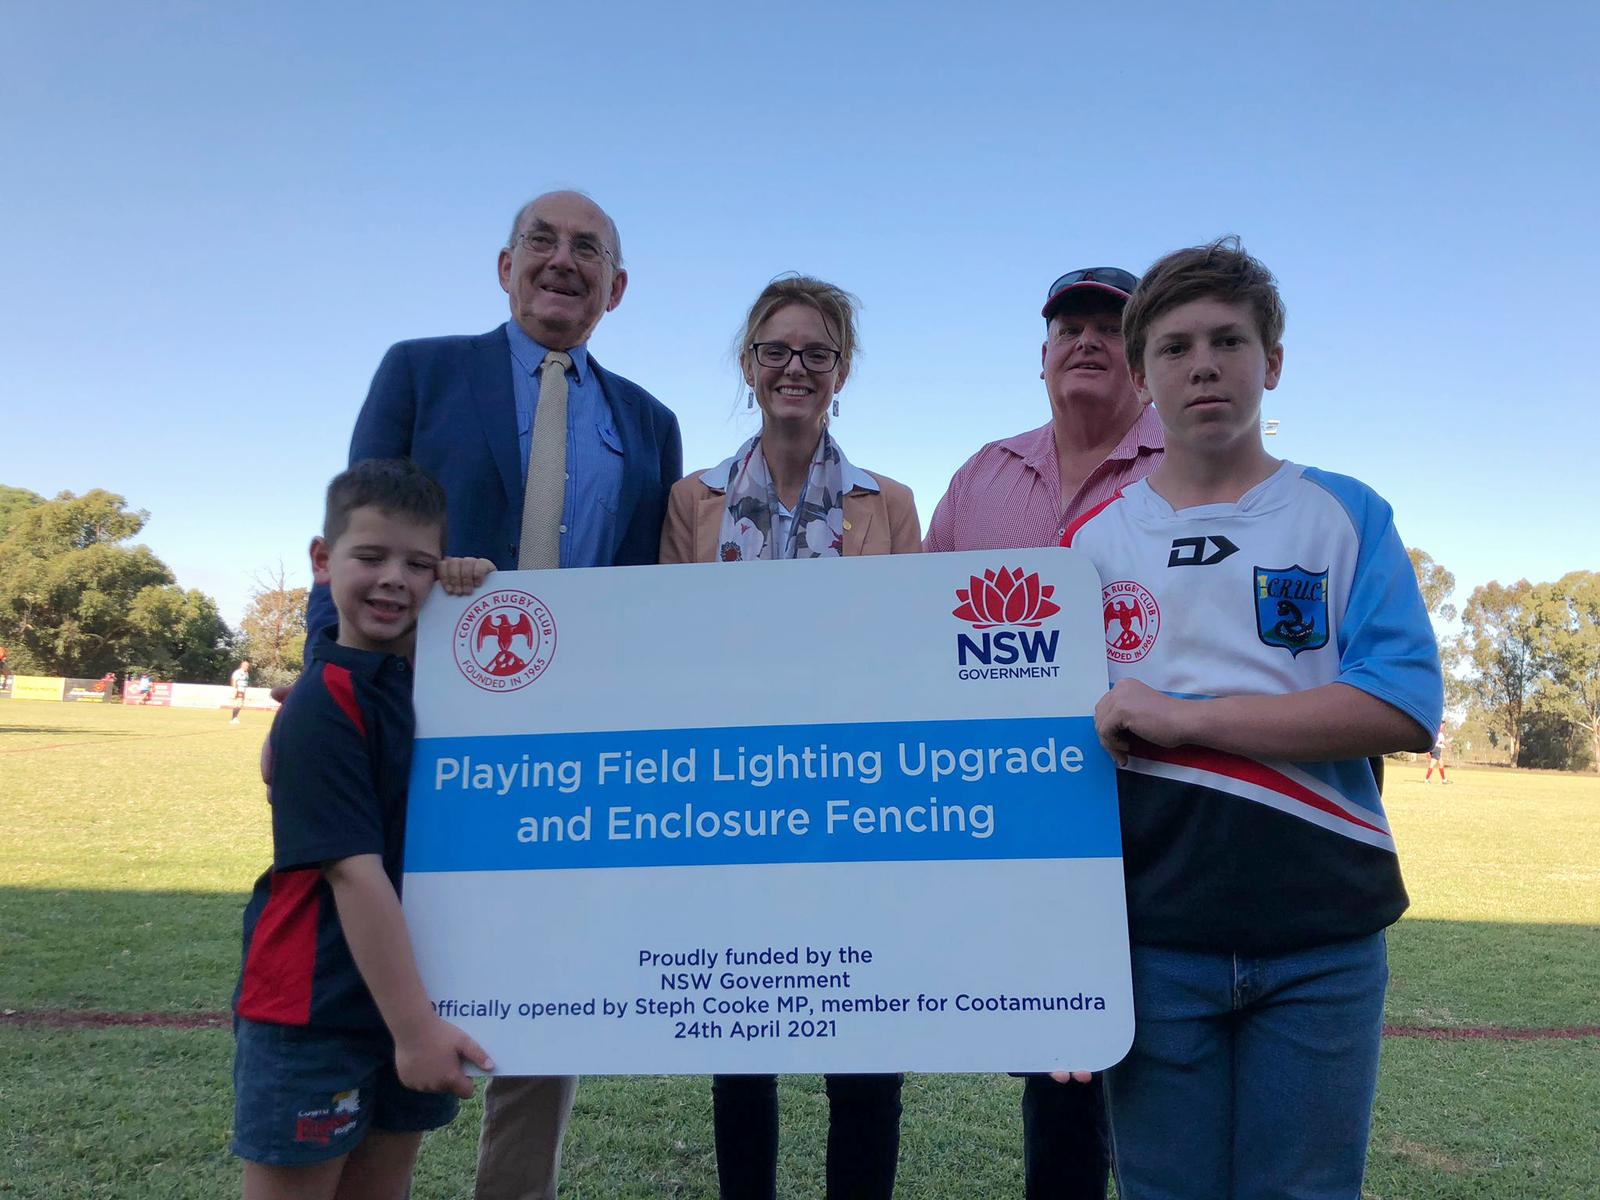 Bill West, Steph Cooke MP, Ian Robertson and two young boys hold a sign reading 'playing field lighting upgrade and enclosure fencing' with the NSW Government and Cowra Rugby Club logos.